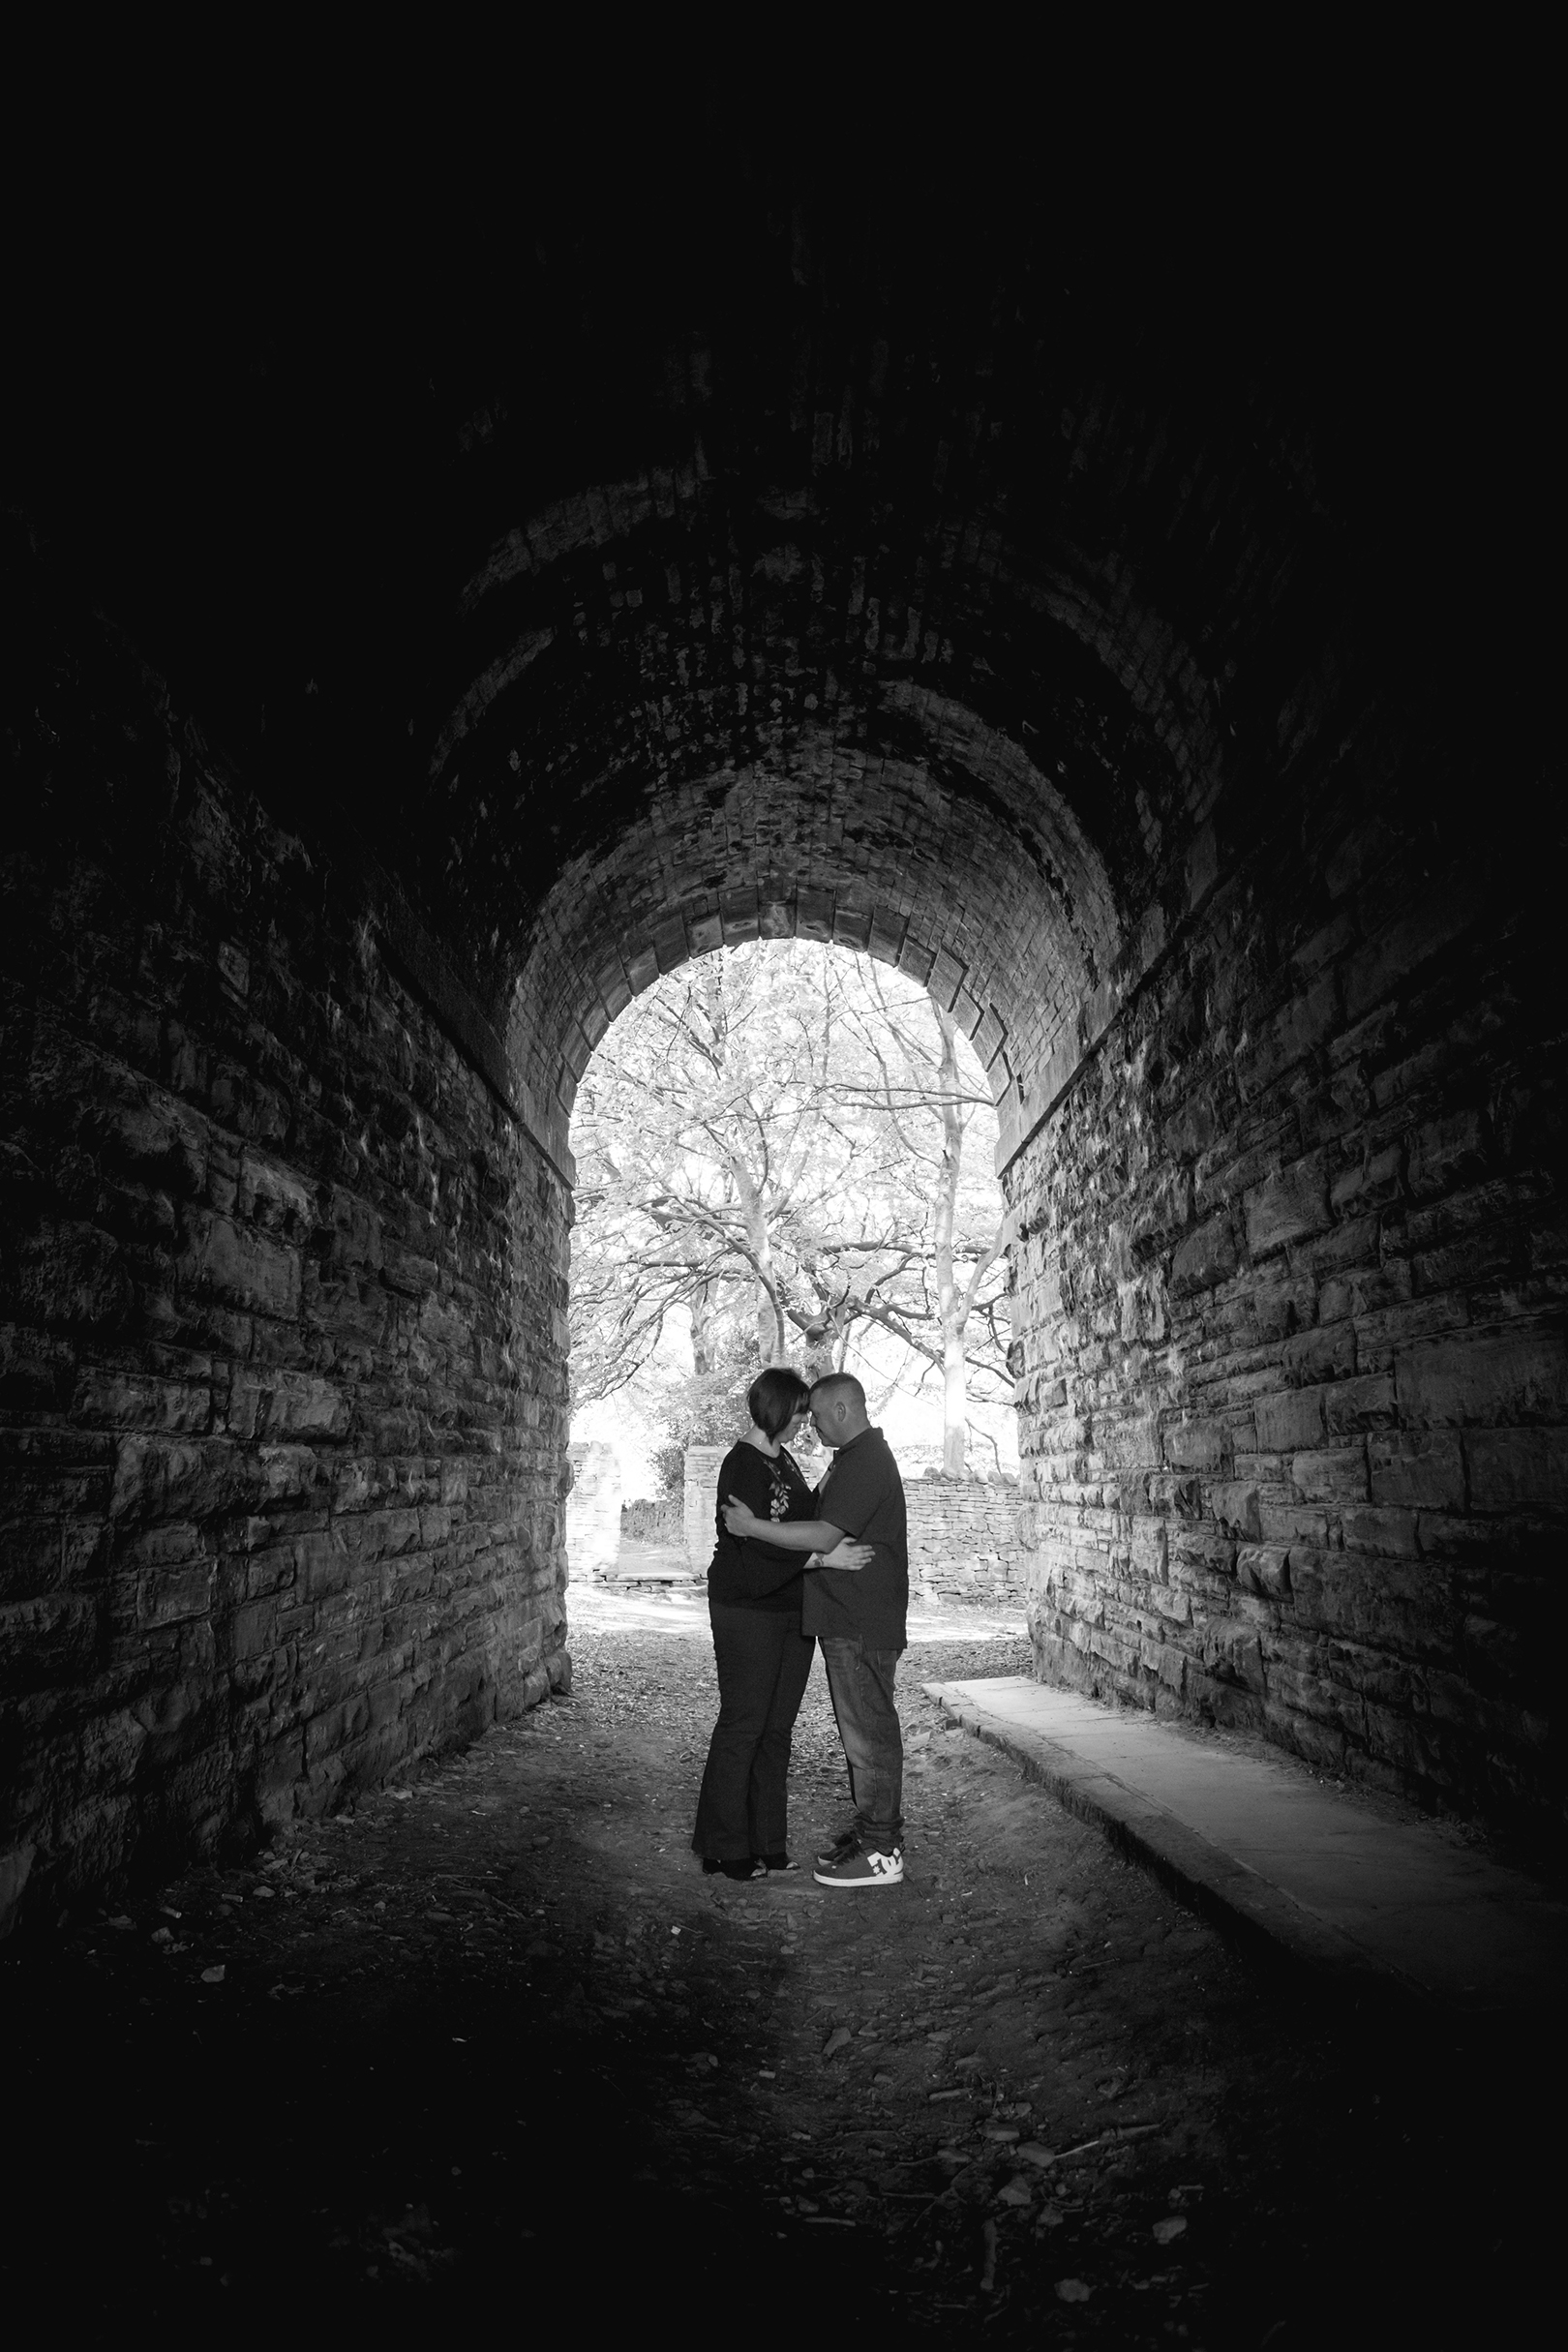 Couple kissing in tunnel, black and white